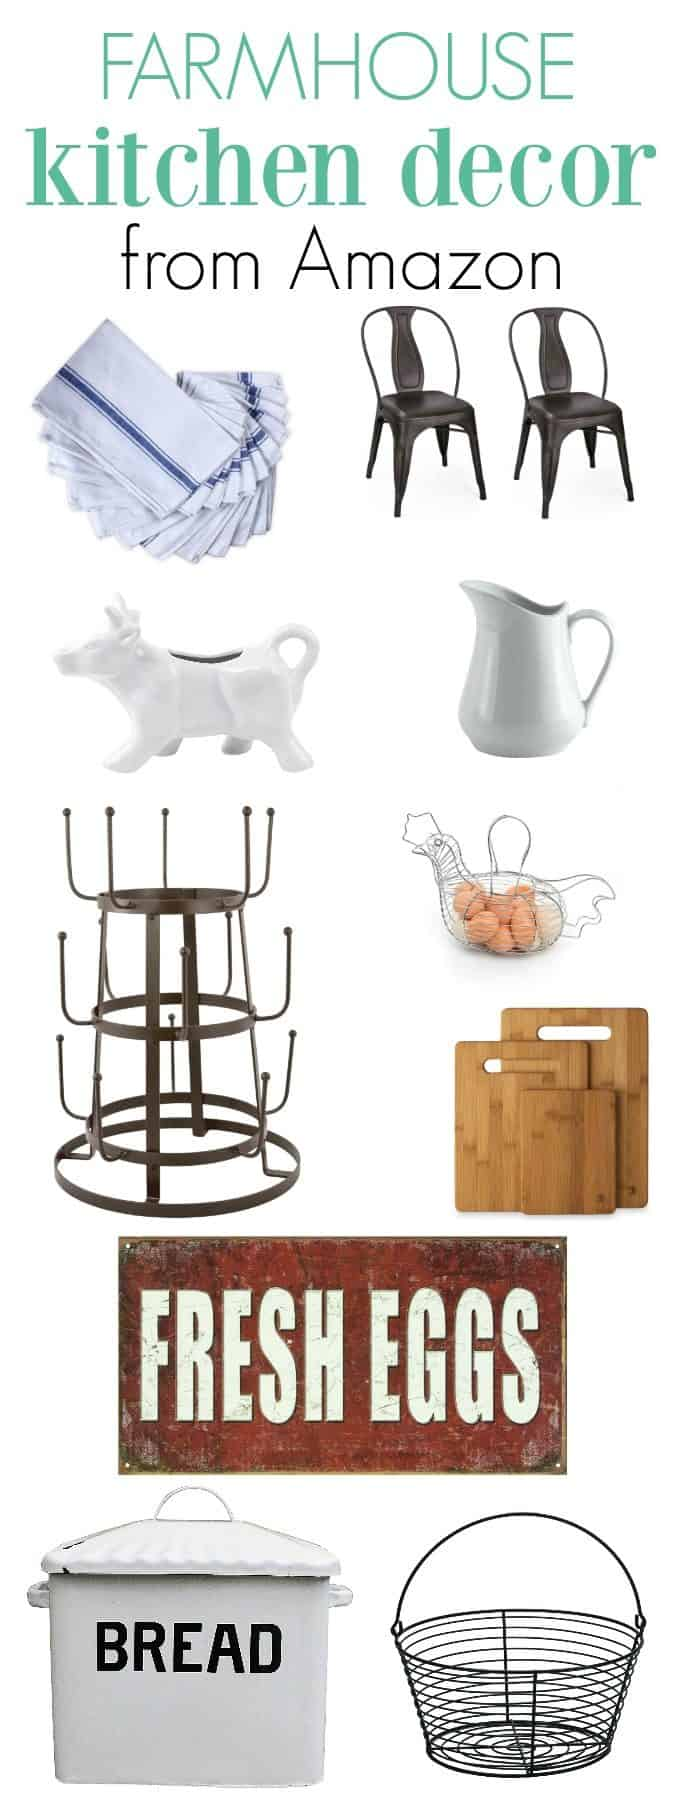 Finding Farmhouse Kitchen Decor on Amazon is a great way to decorate your home on a budget. Vintage looking items that bring fun and function to your space.